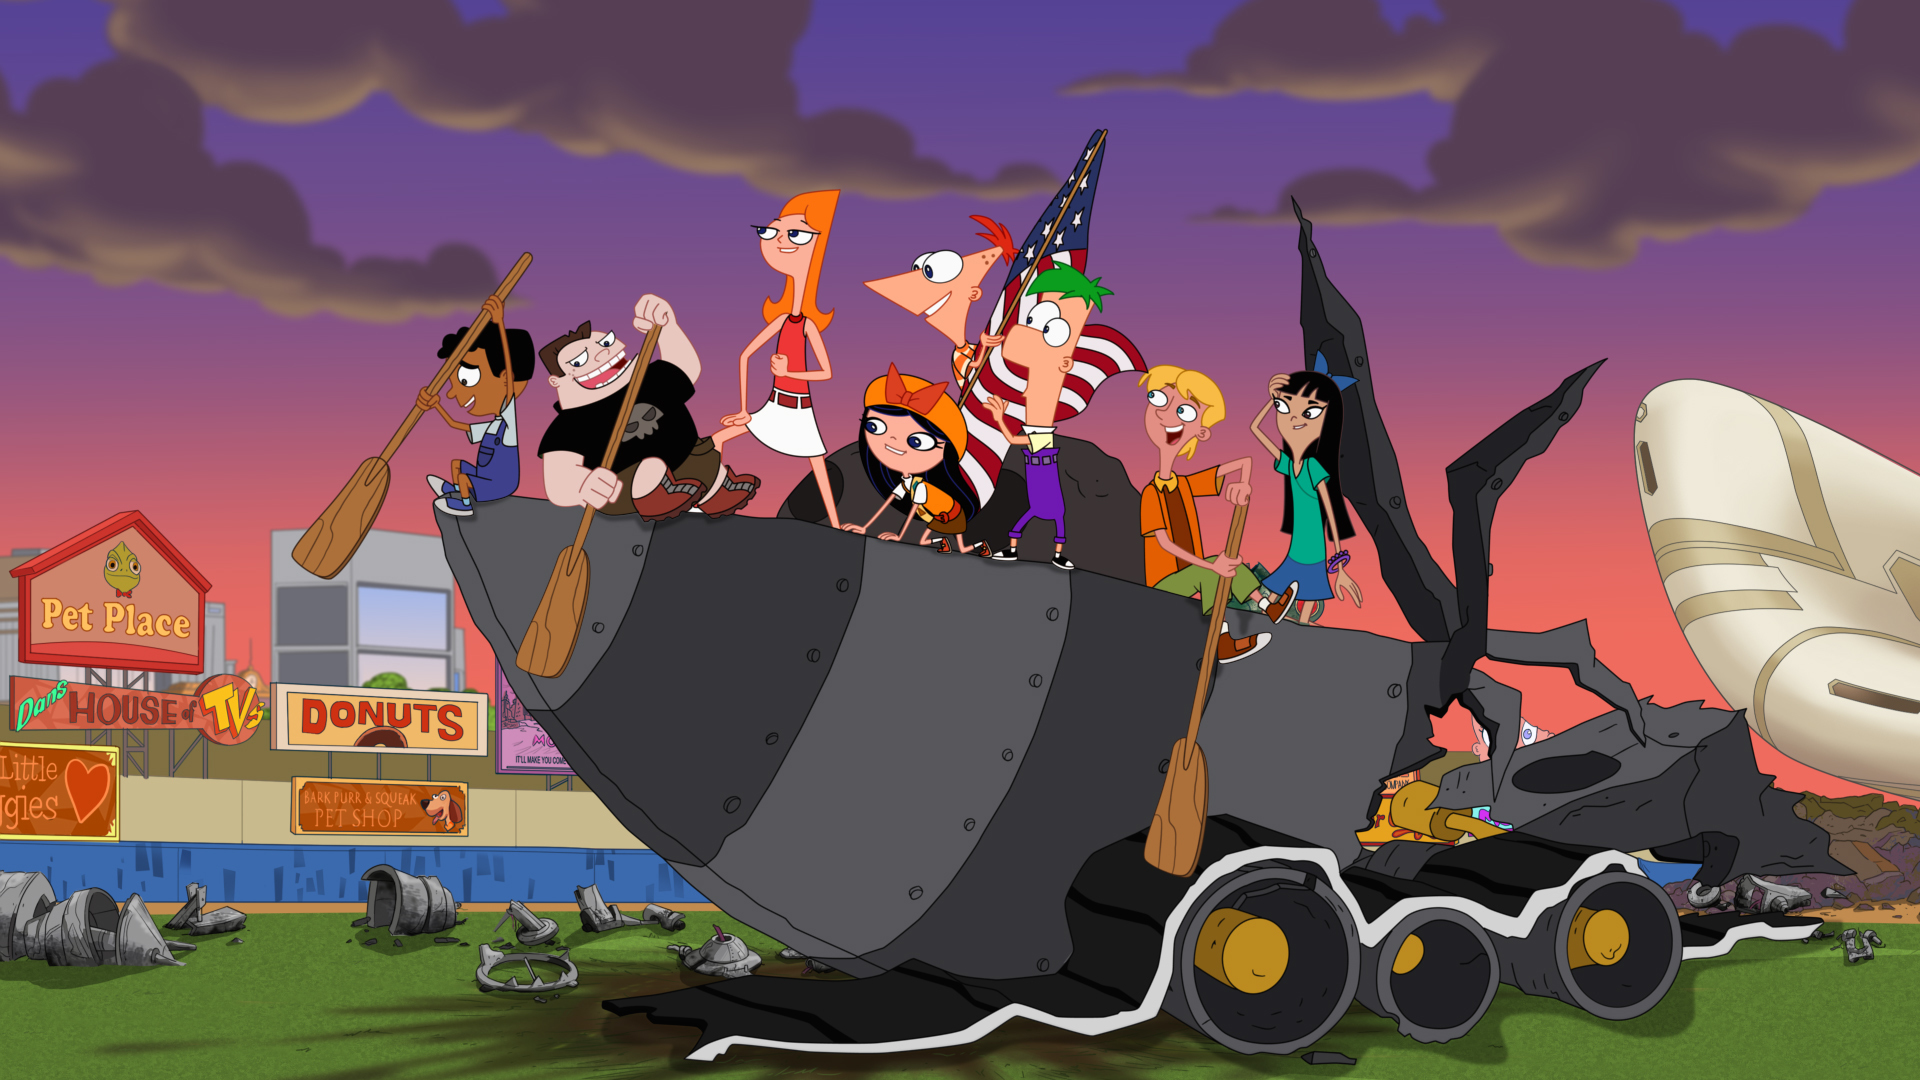 Candace and the Danville gang in 'Phineas and Ferb The Movie: Candace Against the Universe.'